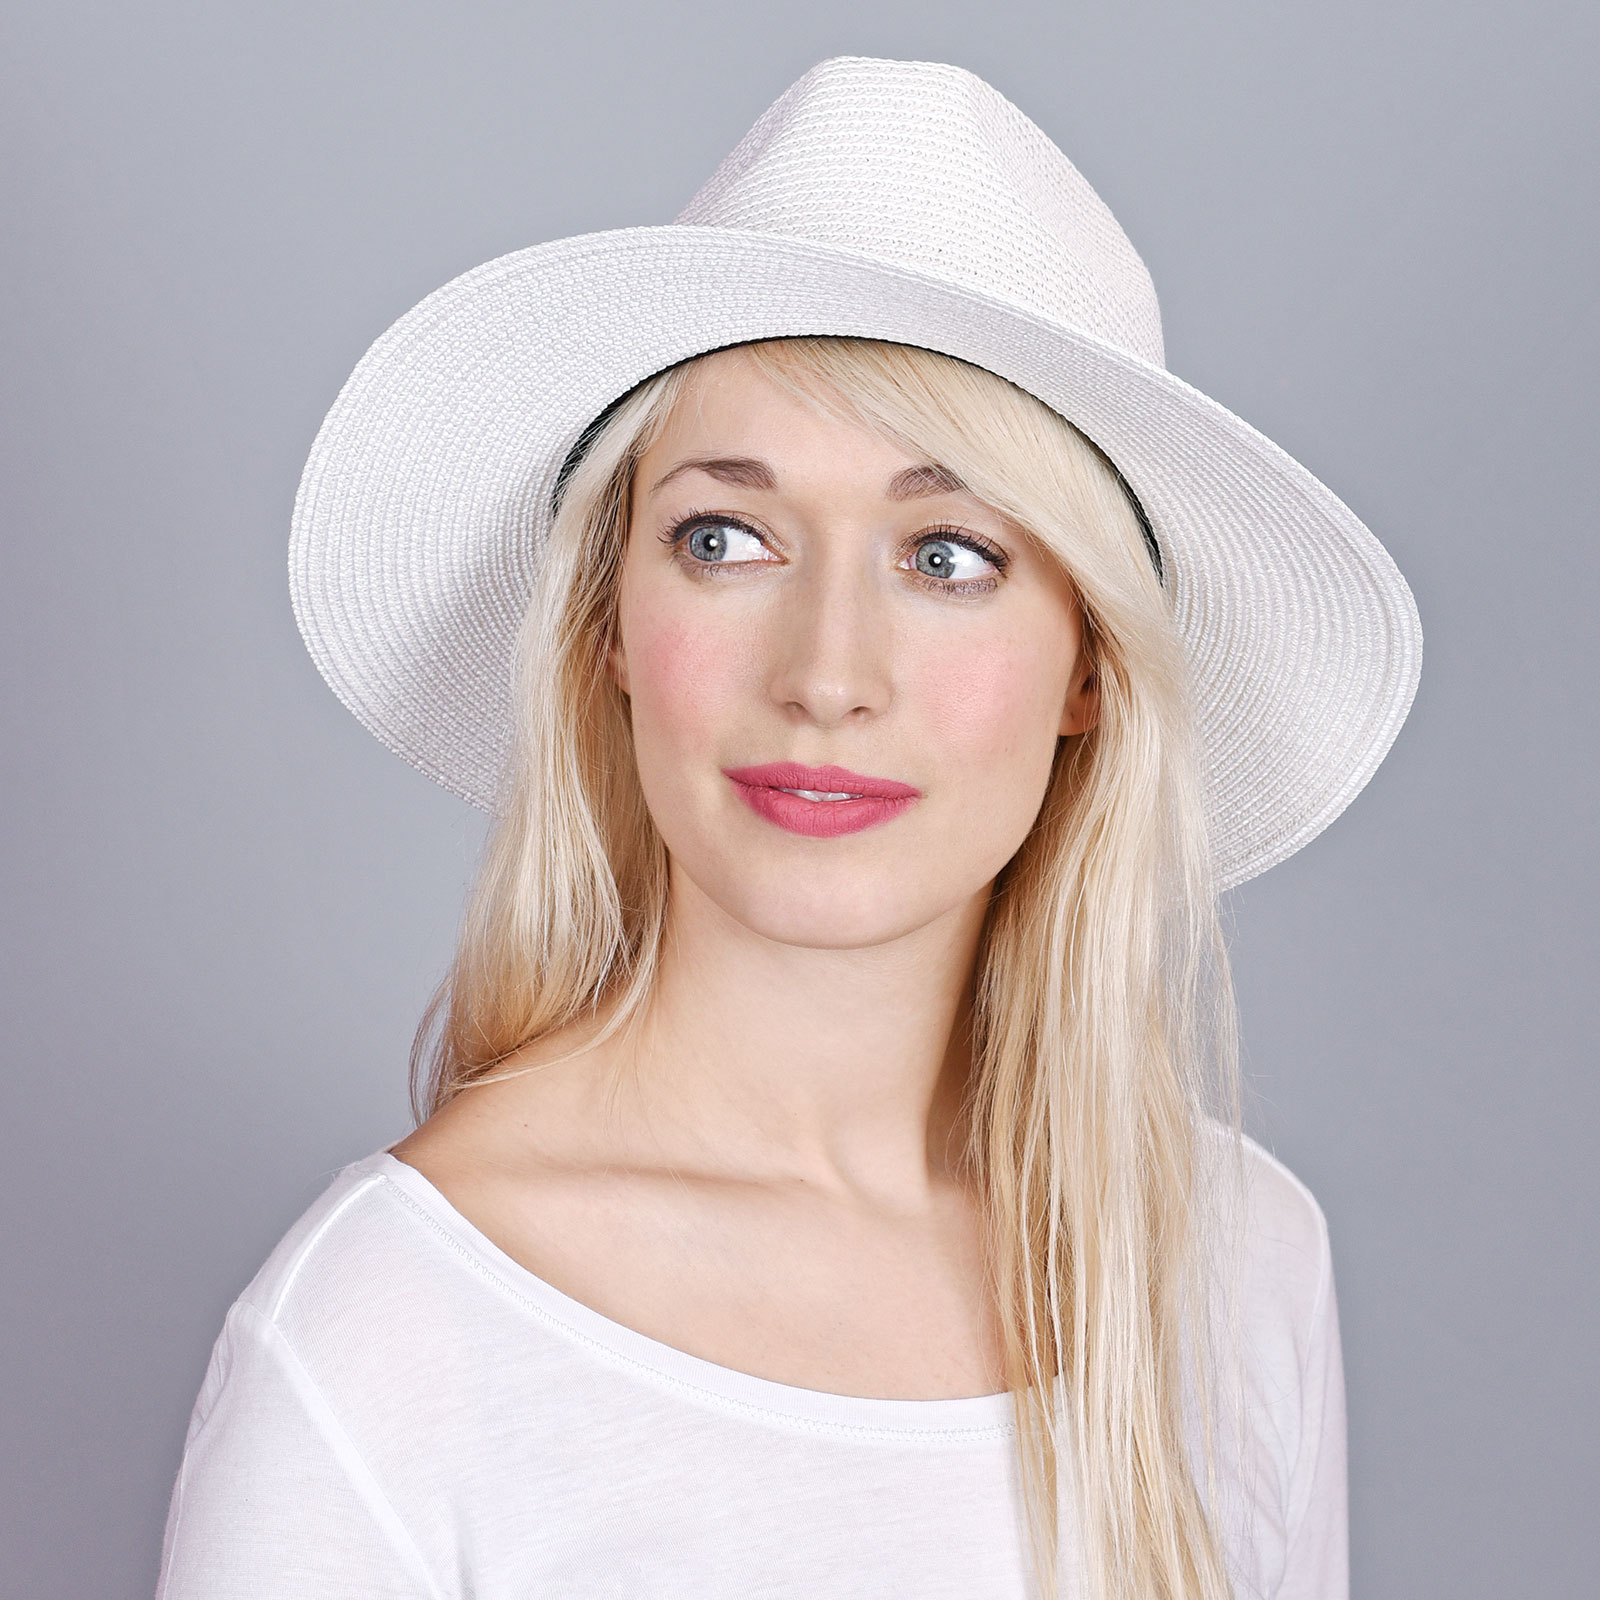 CP-00898-VF16-1-chapeau-femme-blanc-larges-bords